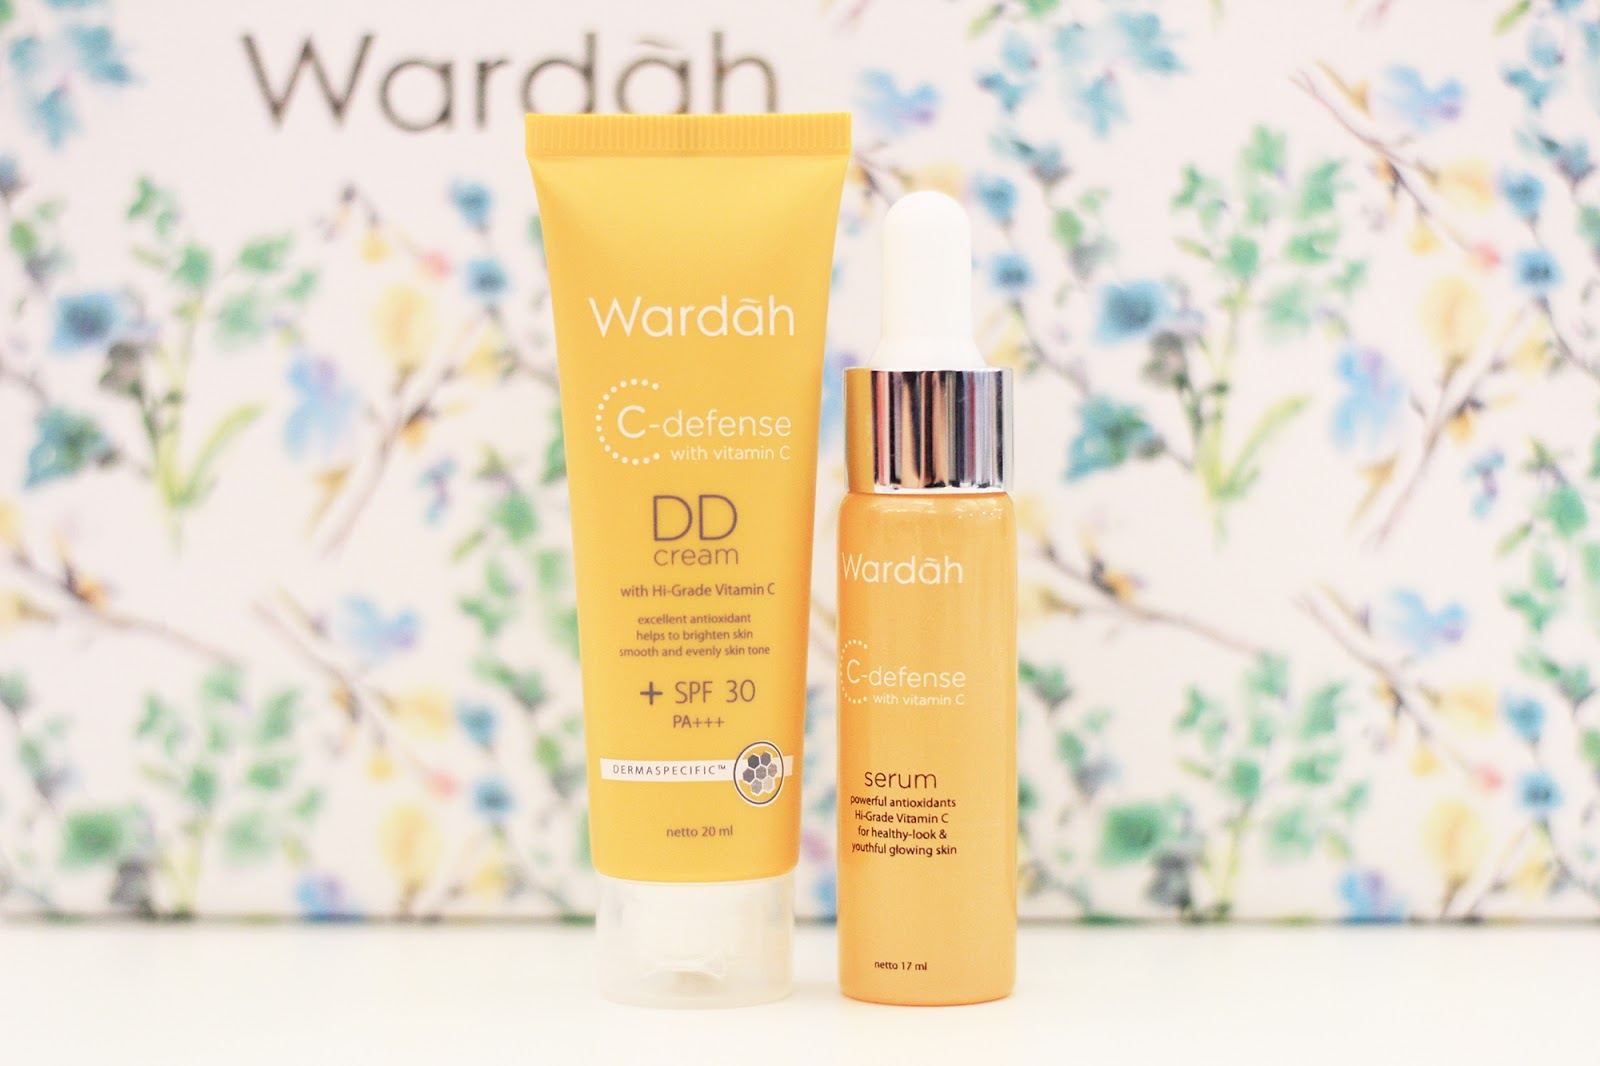 Review Wardah Hampers Unboxing Youniverse Asian Brave Look Big C Defence Serum Defense And Dd Cream